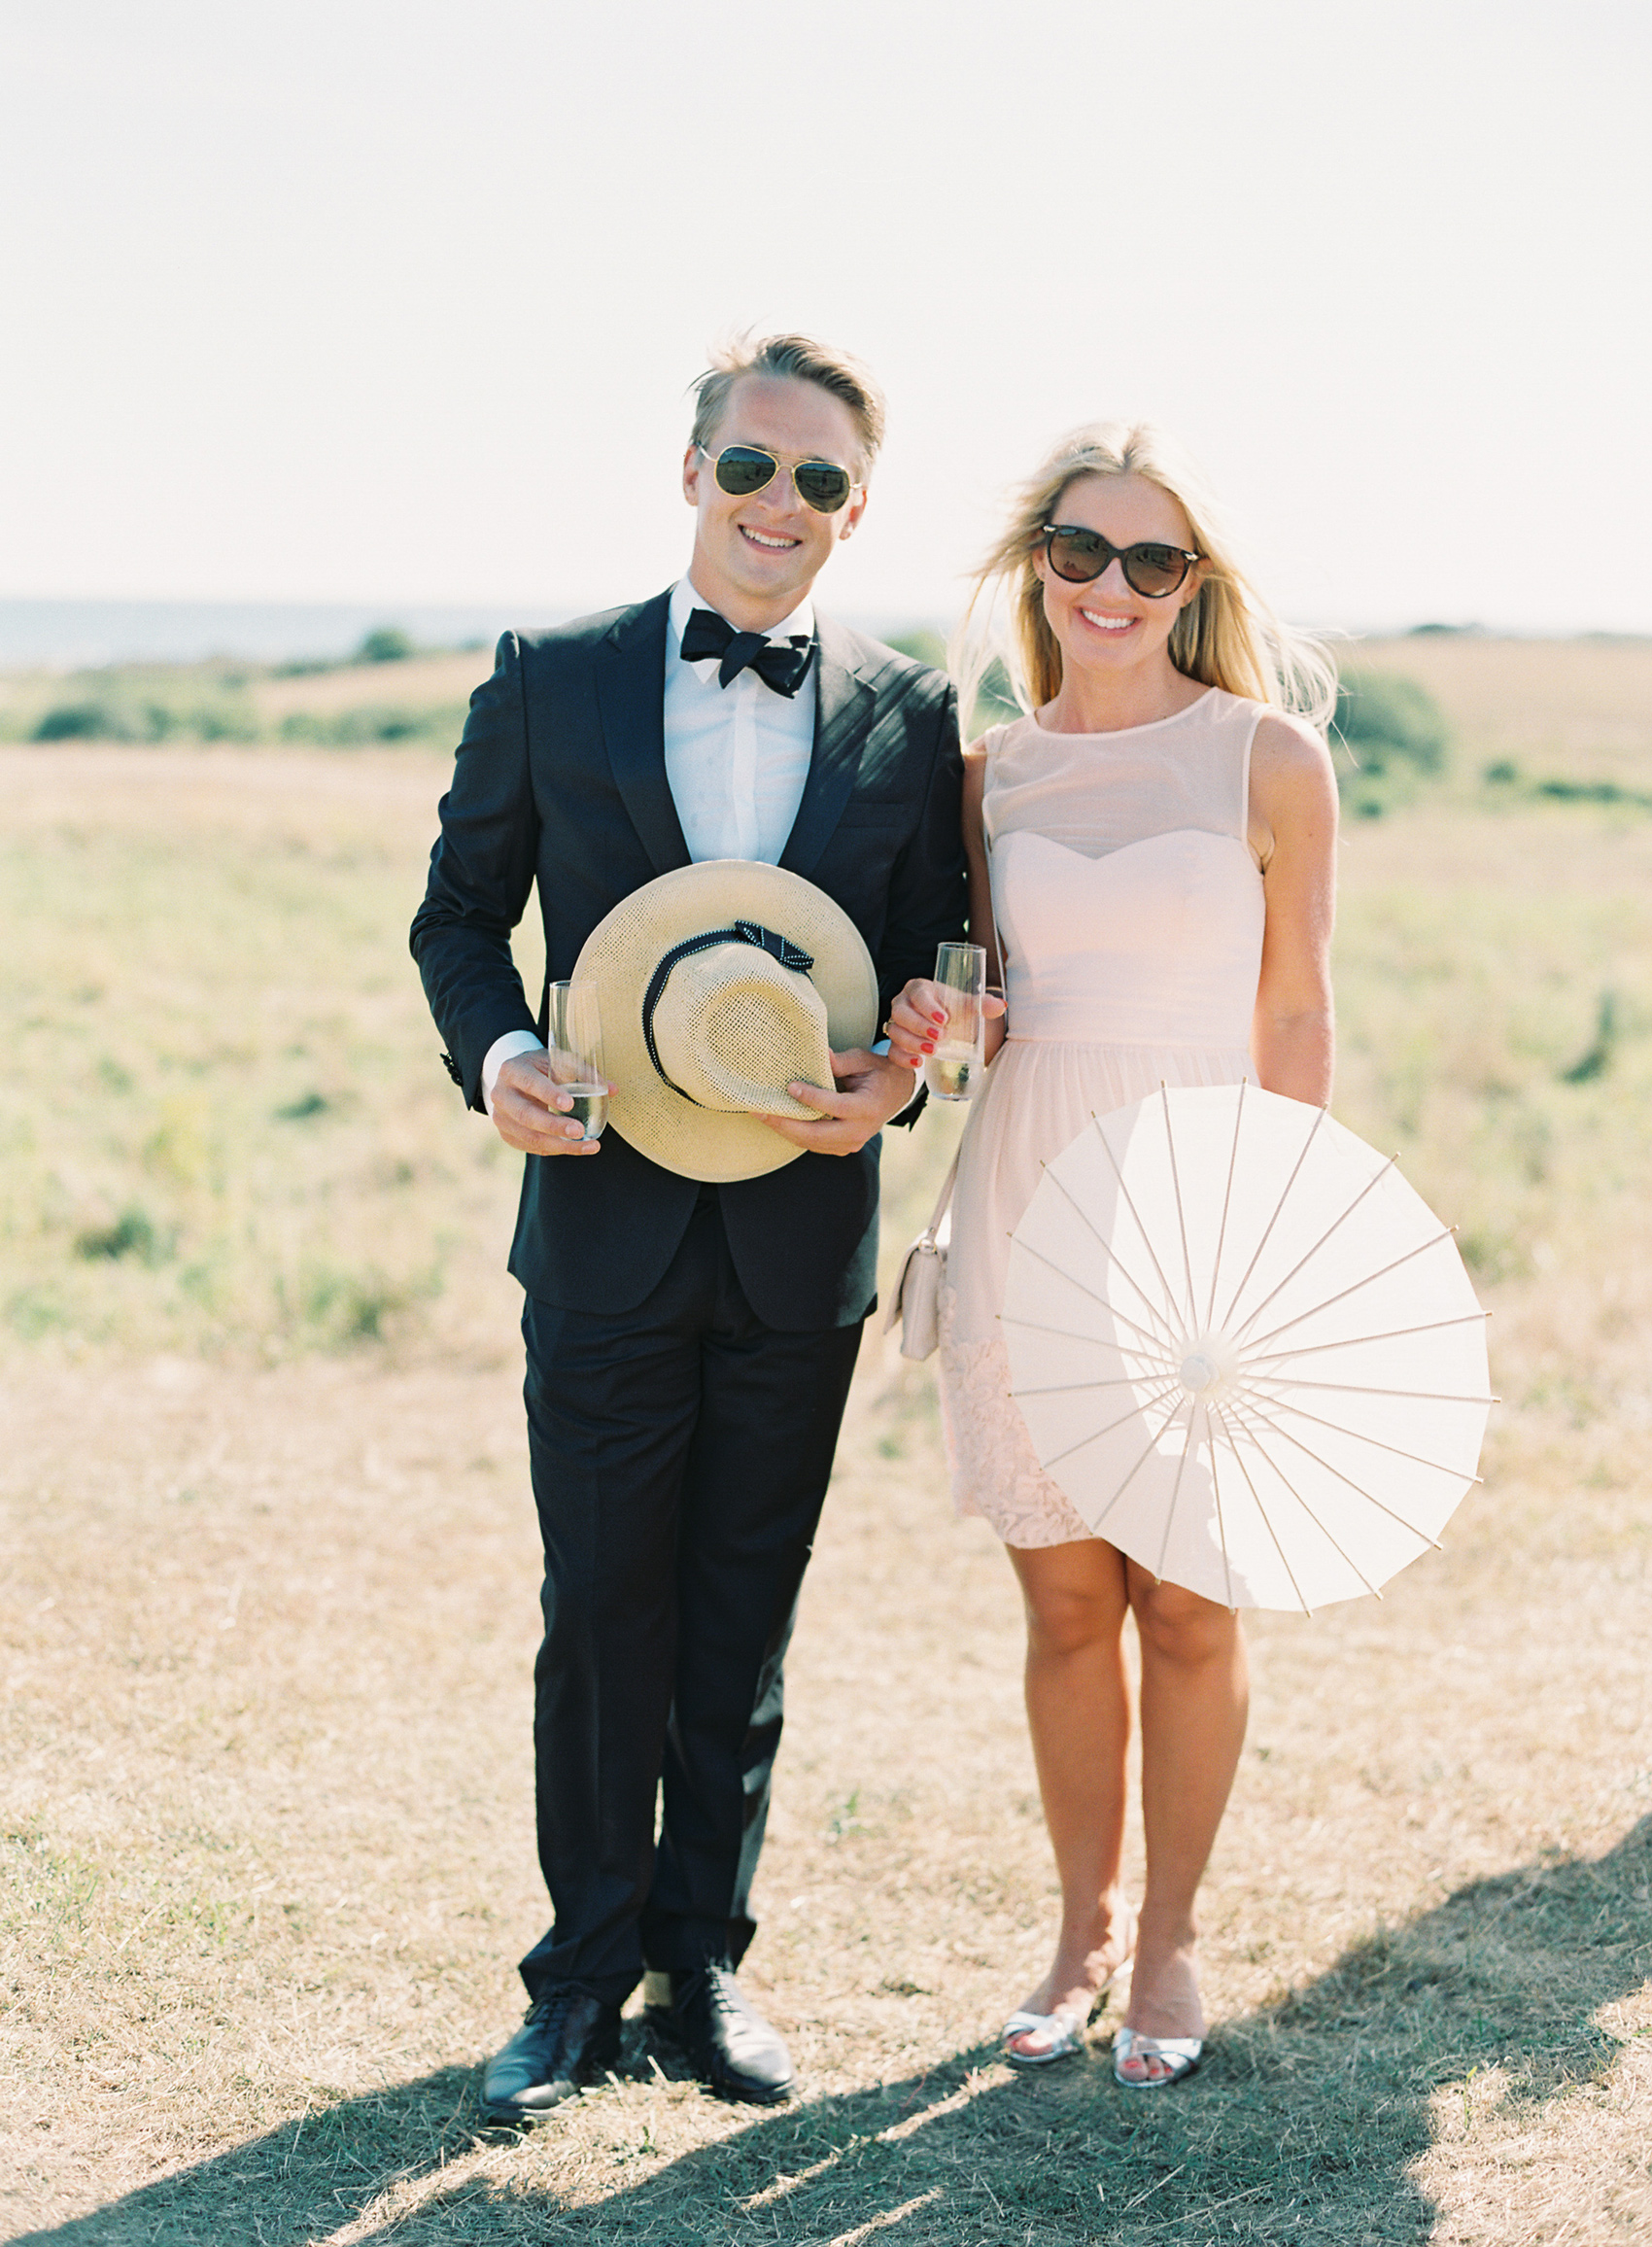 Are There Any Dress Codes That Should Be Avoided for a Summer Wedding?